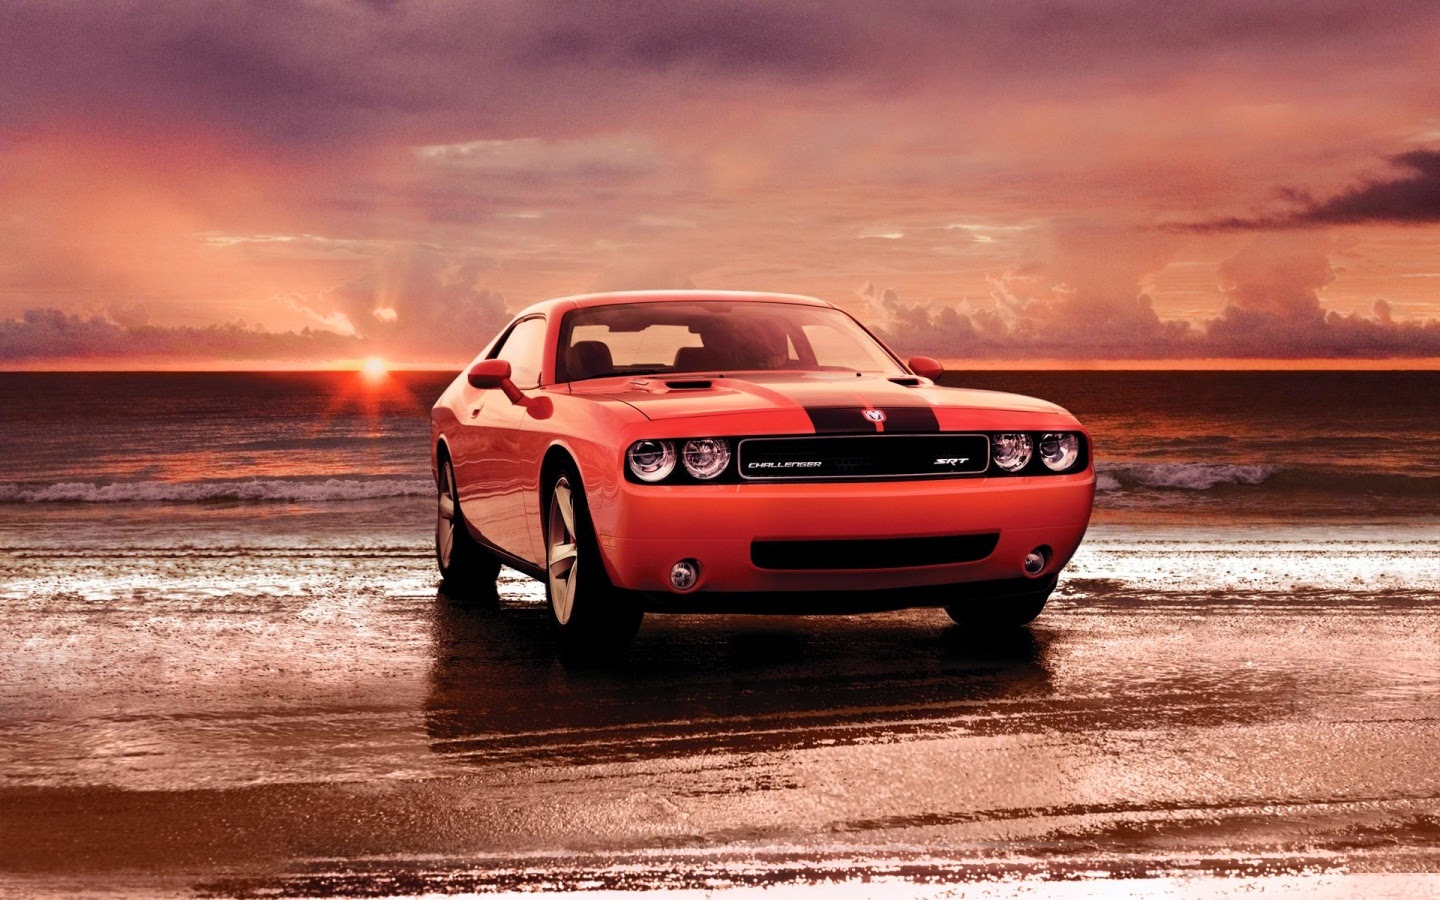 HD Cars and Bikes Wallpapers